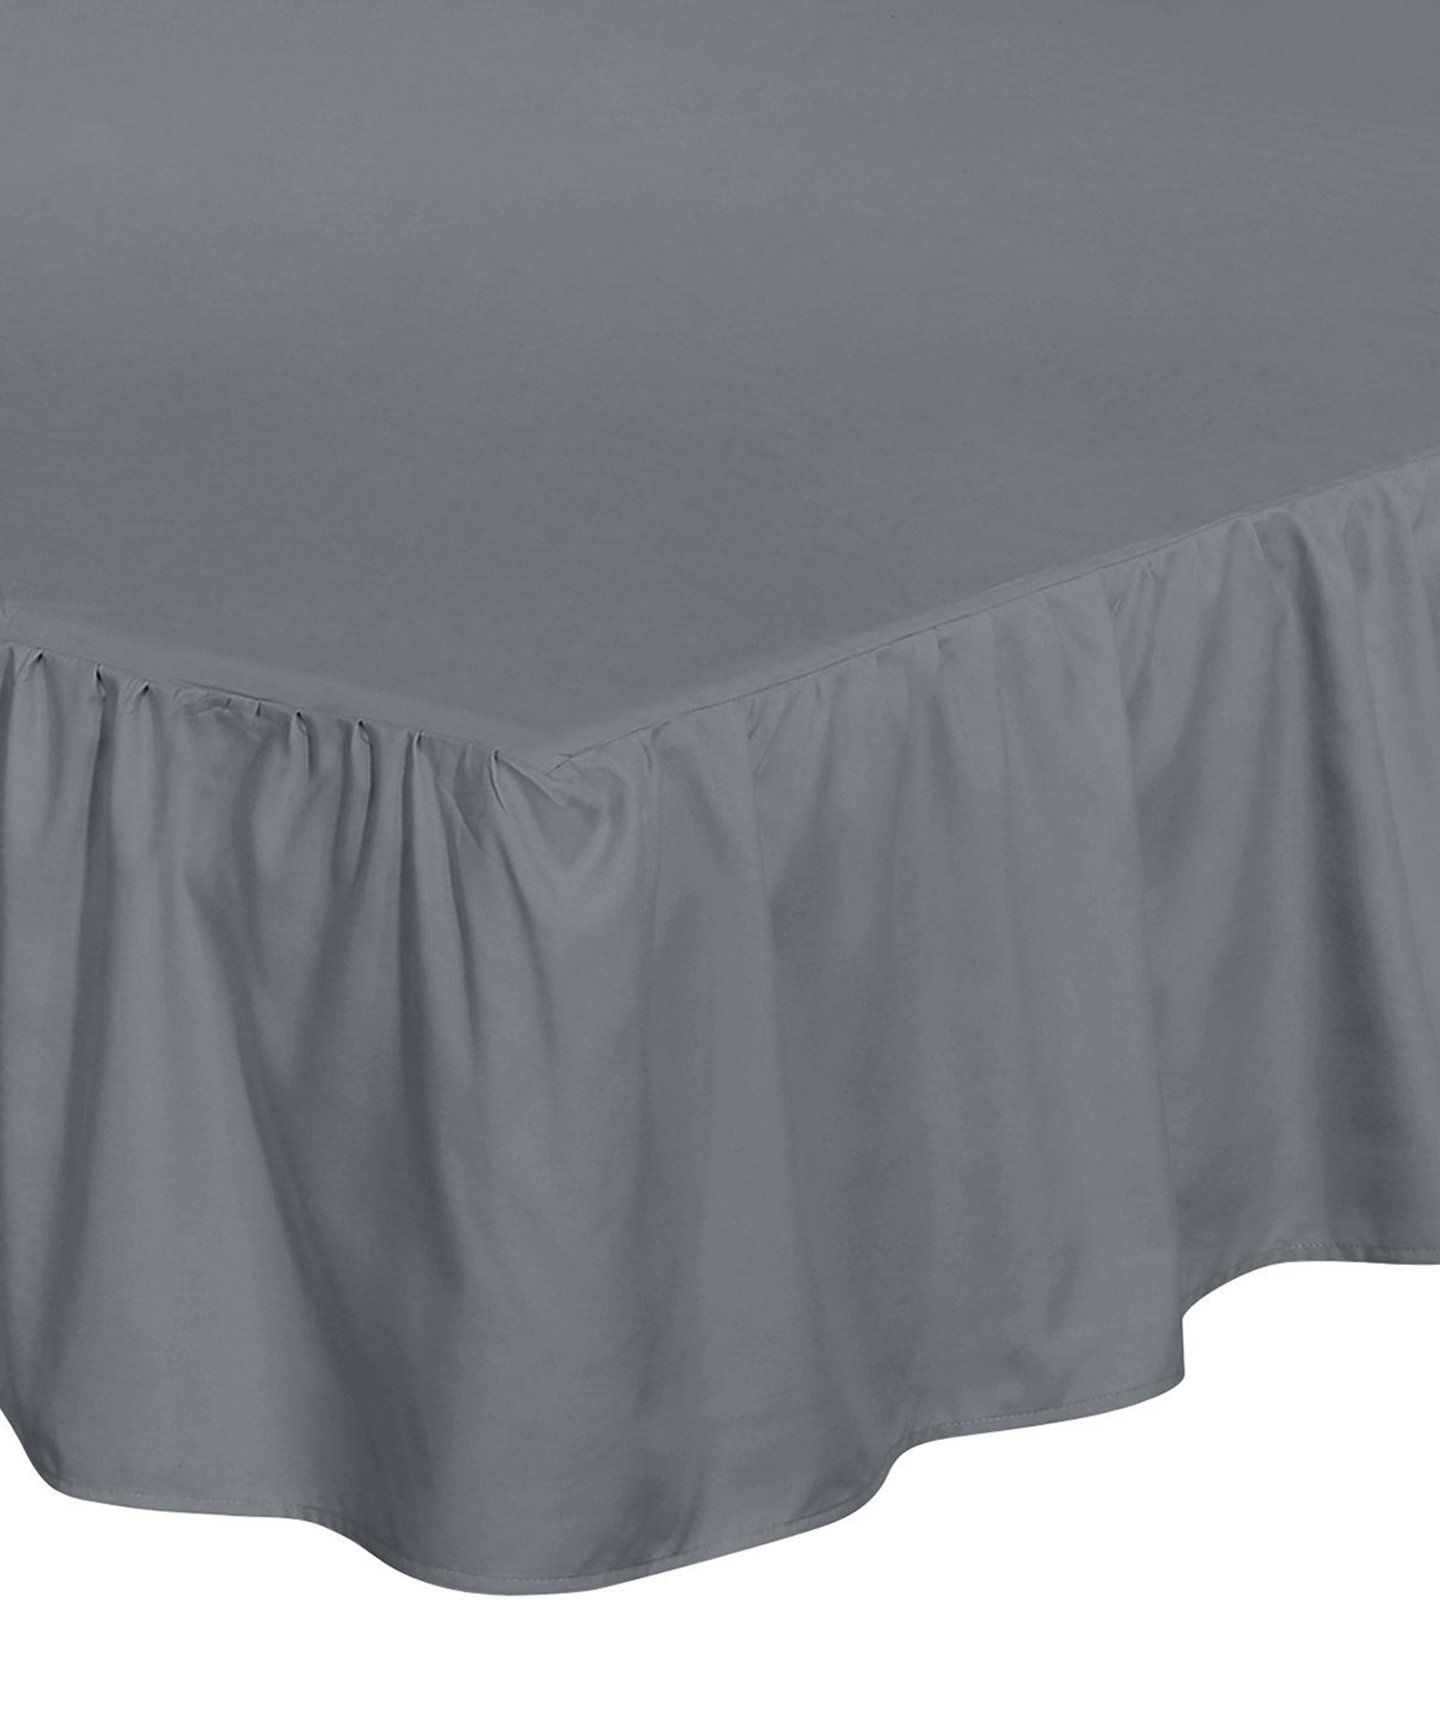 Utopia Bedding Bed Ruffle Skirt (Twin - Grey) - Brushed Microfiber Bed Wrap with Platform - Easy Fit - Gathered Style - 3 Sided Coverage